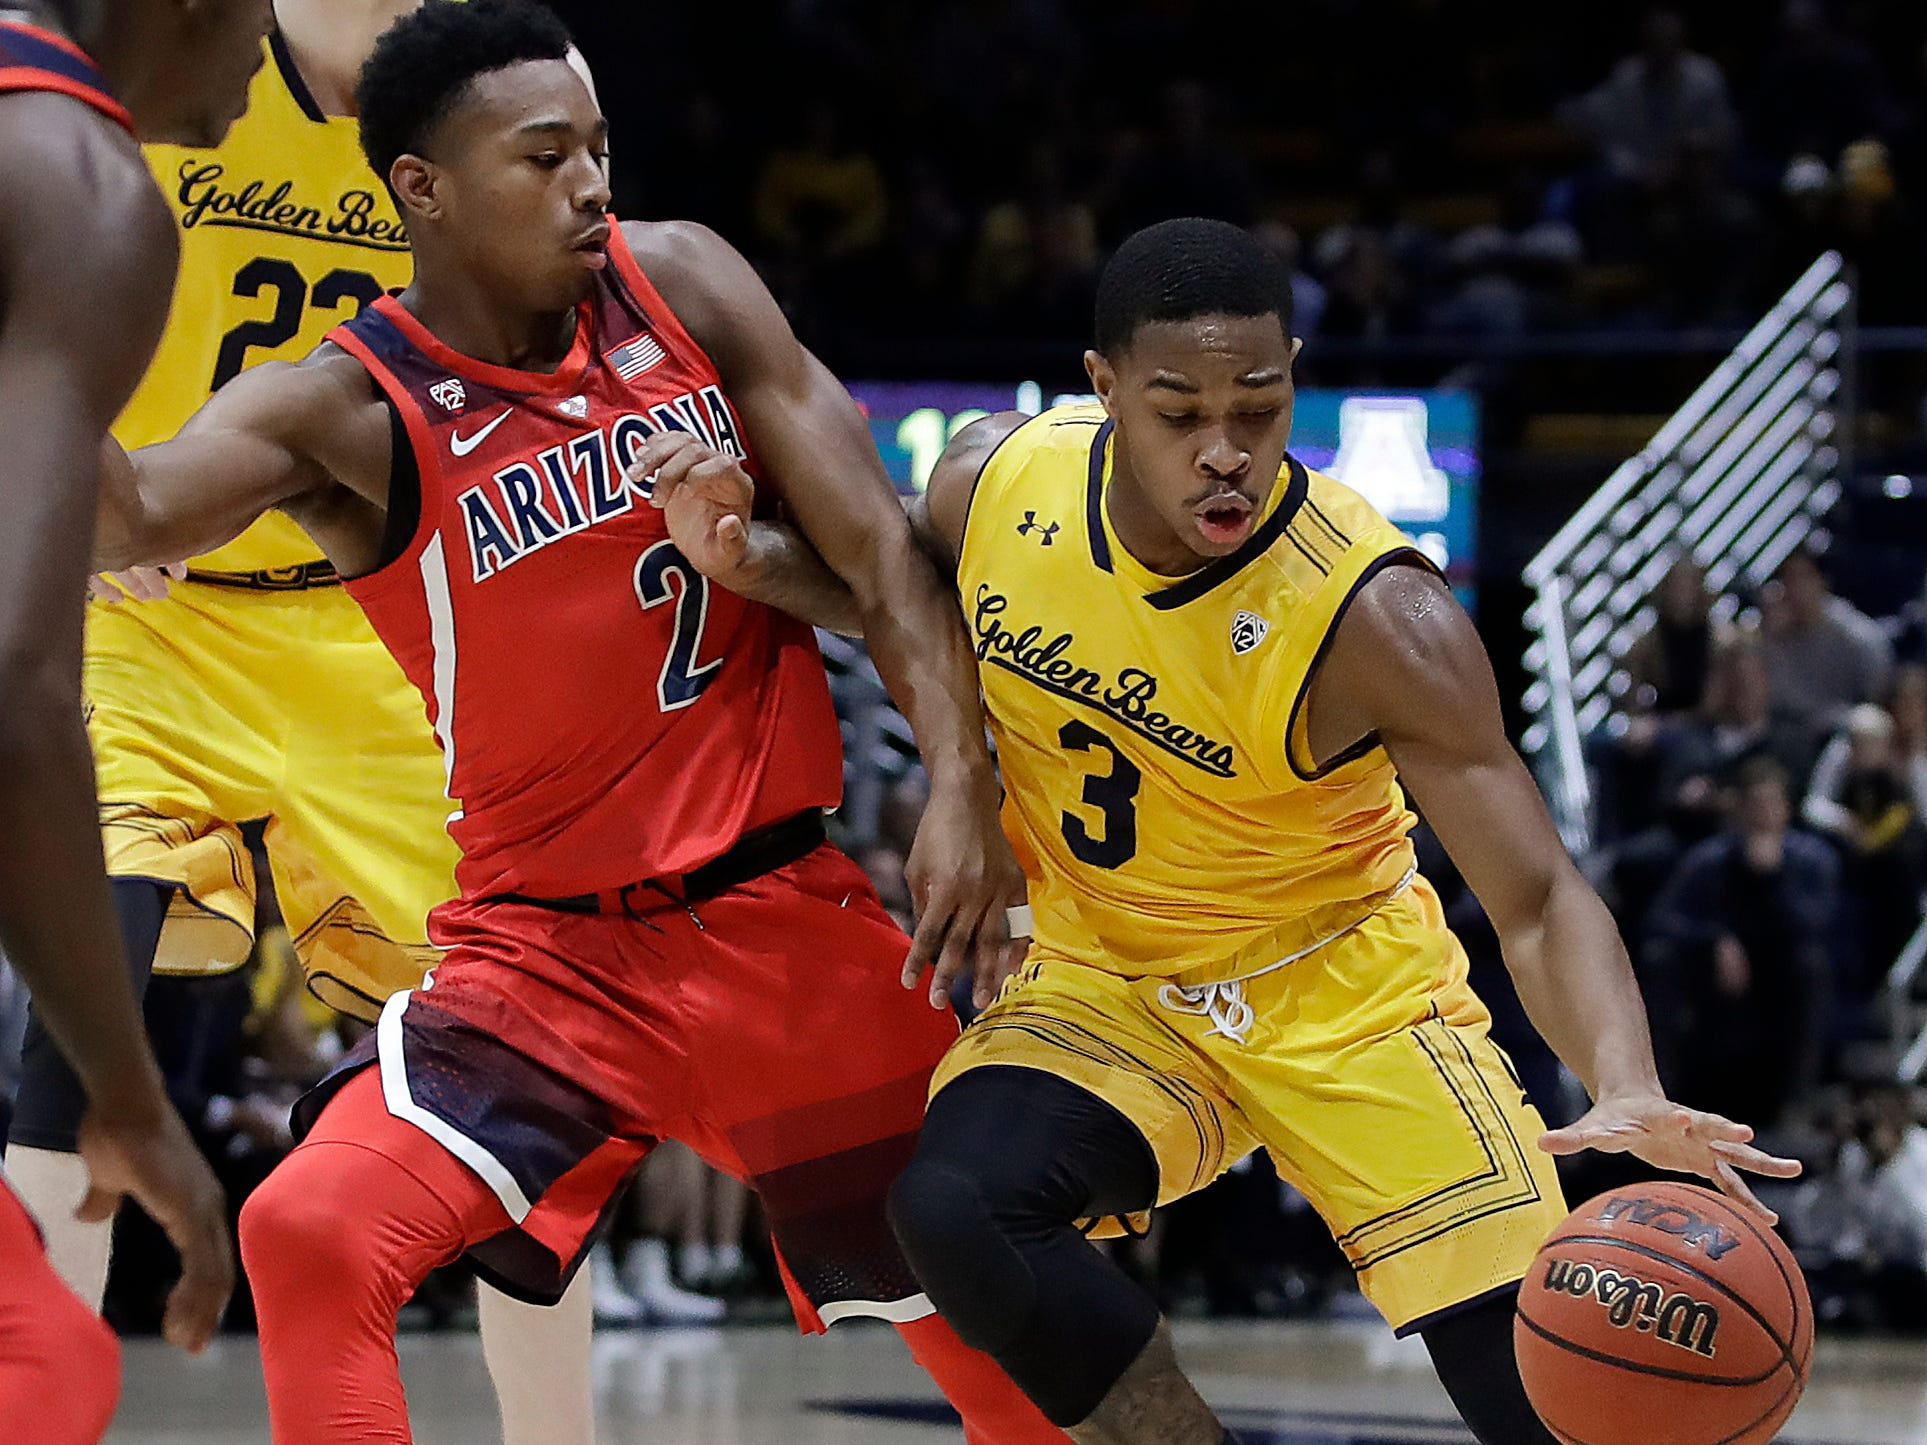 California's Paris Austin, right, drives the ball against Arizona's Brandon Williams (2) during the first half of an NCAA college basketball game Saturday, Jan. 12, 2019, in Berkeley, Calif. (AP Photo/Ben Margot)